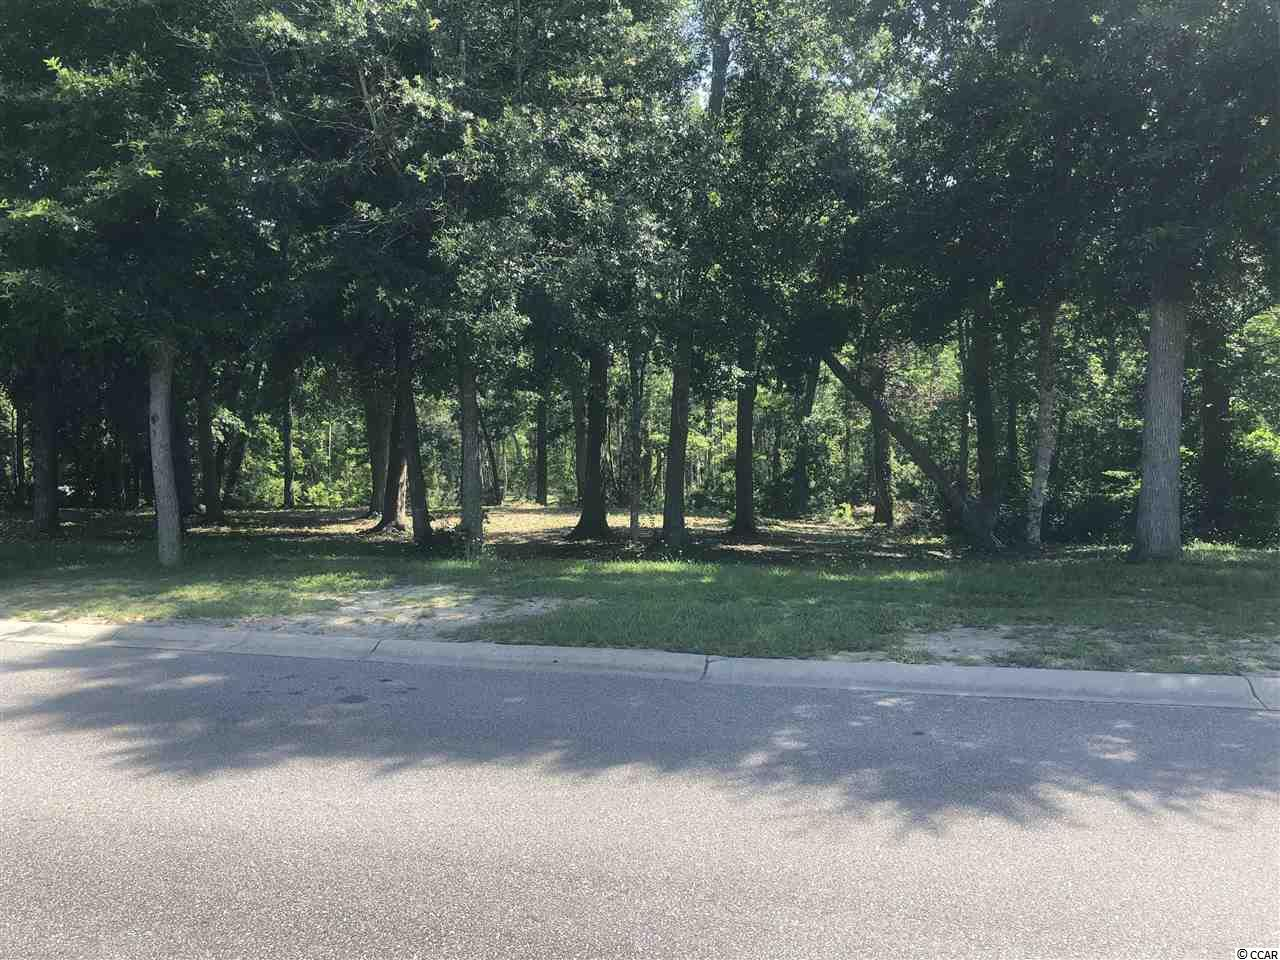 Build your dream home in the Prestigious community of Surf Estates in North Myrtle Beach.  This beautiful lot is ready for your new home!  You will love this quiet, amazing community that is just a short walk or golf cart ride to the beach!  Lot 30 is also available for purchase!  Close to everything North Myrtle Beach has to offer!